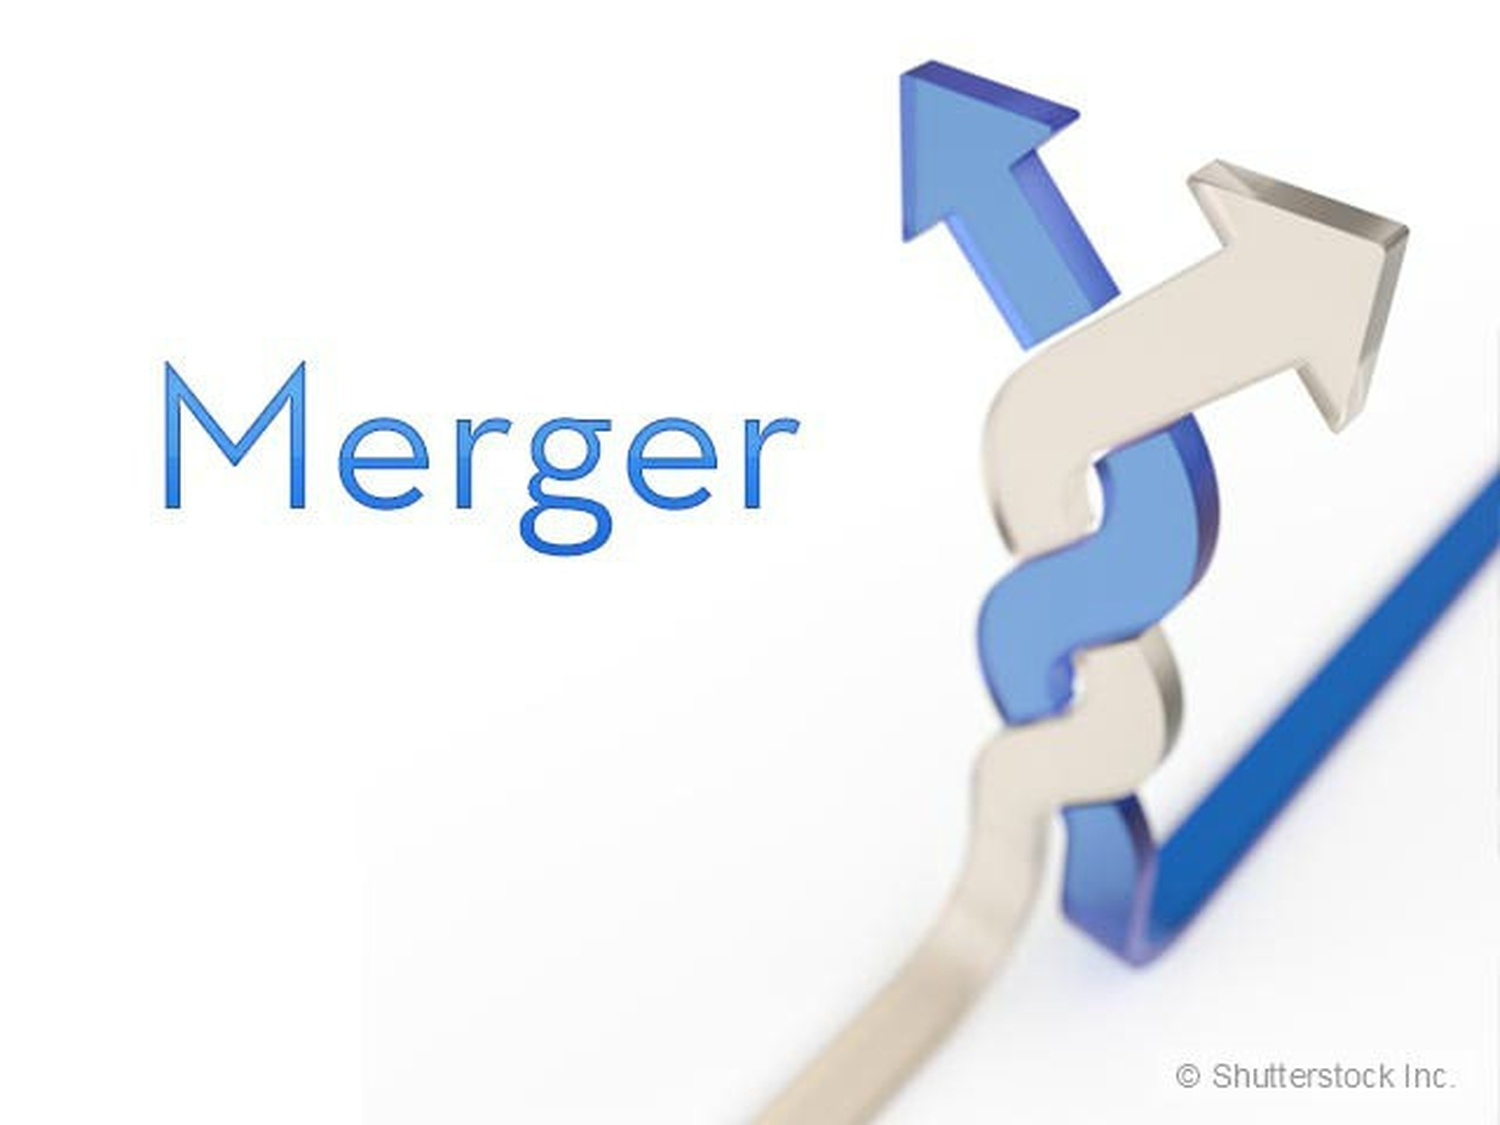 towne services inc announces proposed merger January 14, 2015 - exelon and pepco holdings, inc reach settlement agreement with new jersey board of public utilities staff in proposed merger november 21, 2014 - ferc approves merger of exelon and pepco holdings, inc.